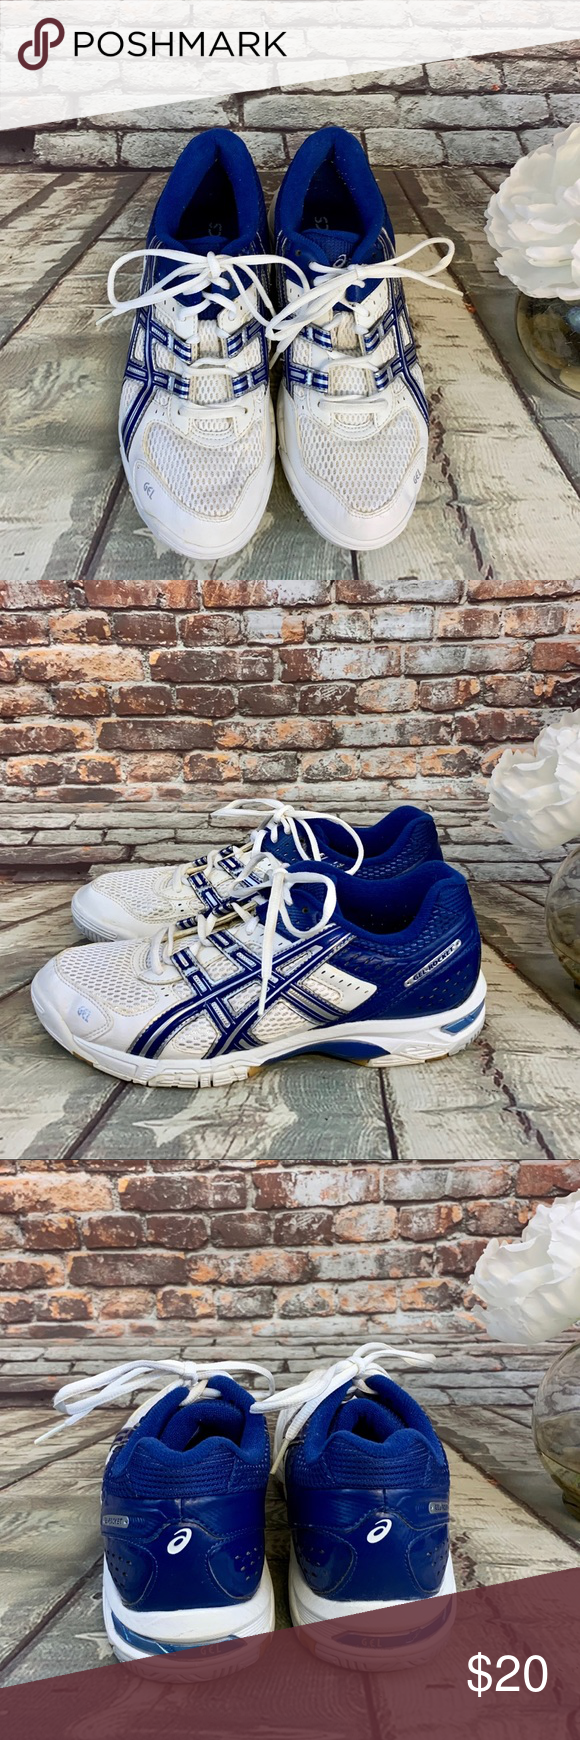 ASICS White Blue Silver Gel Rocket Volleyball Shoe ASICS White Blue Silver Gel Rasics